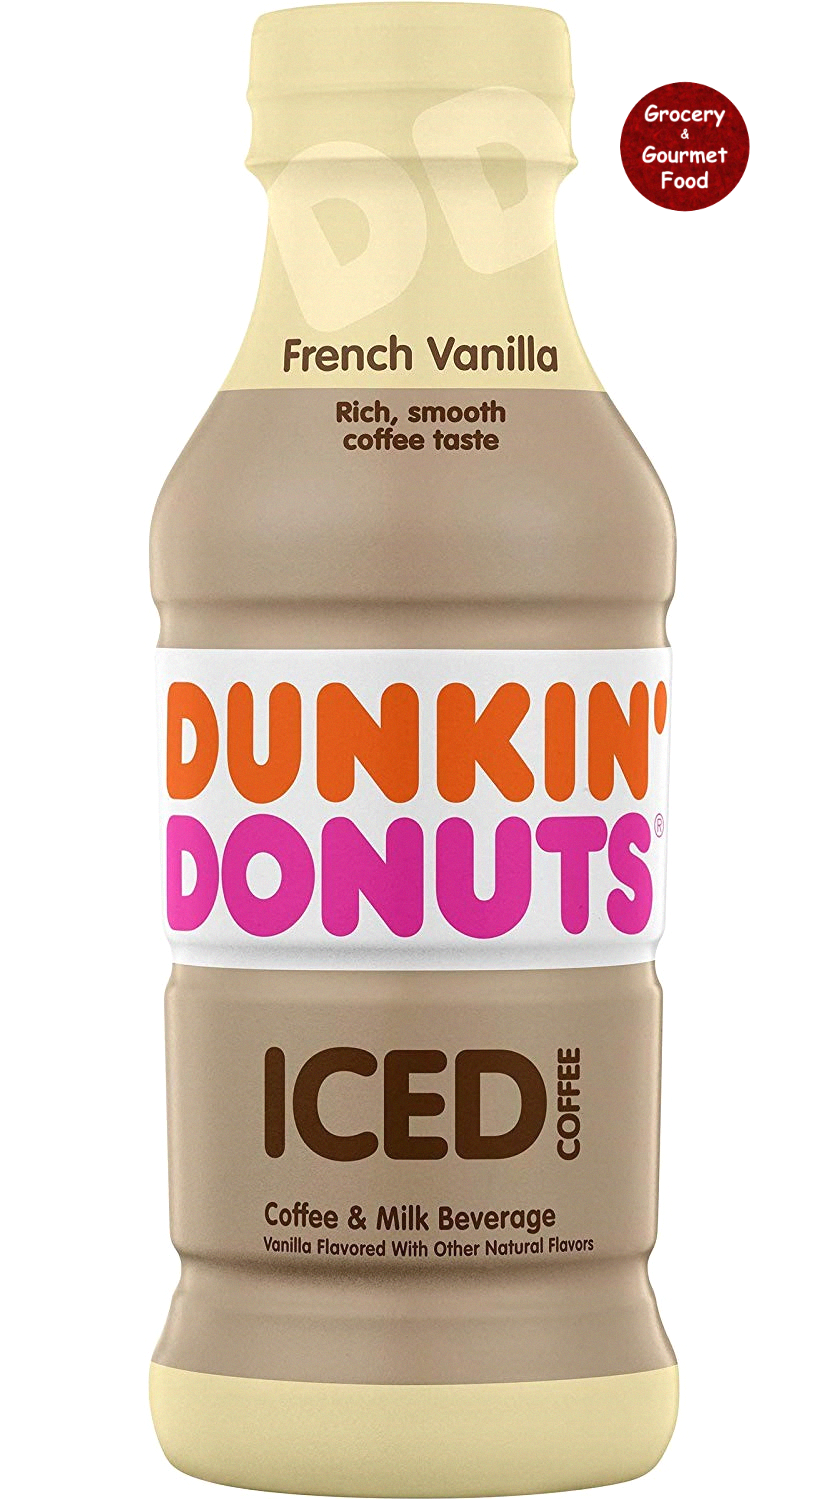 Dunkin' Donuts Bottled Ice Coffee, French Vanilla, coffee